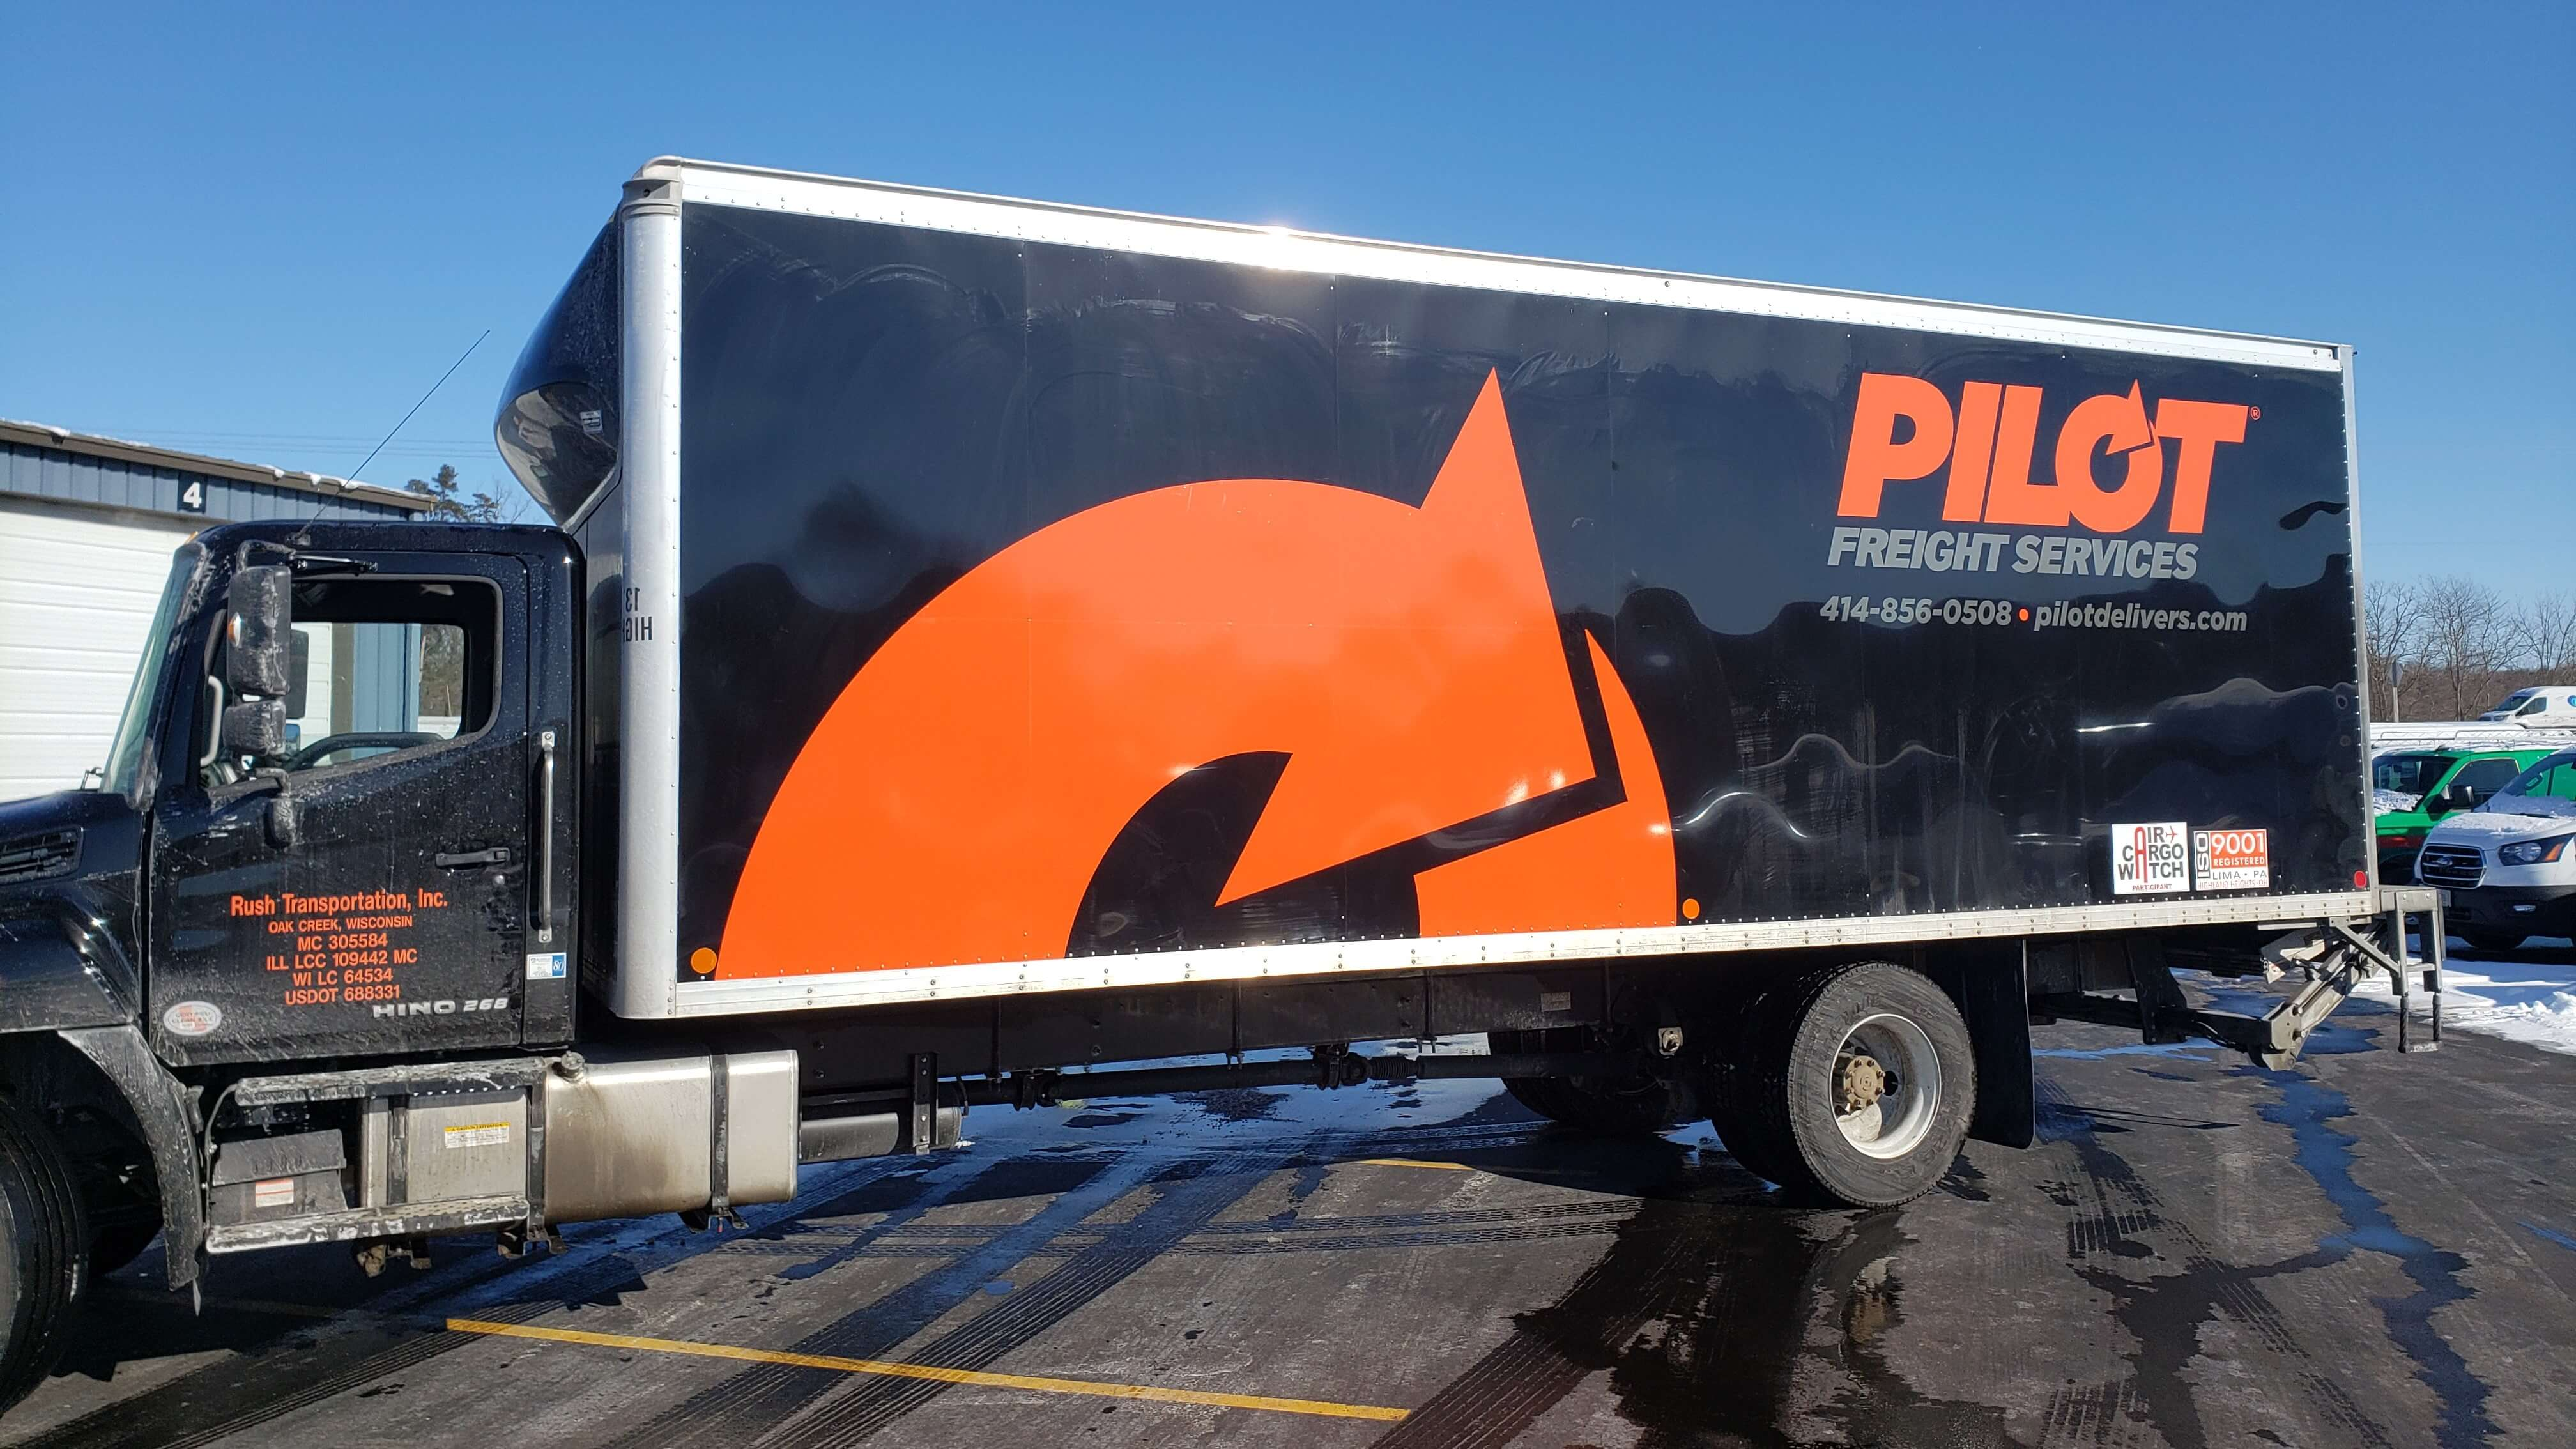 Pilot Freight Fleet Vehicle Wrap by Signs and Lines